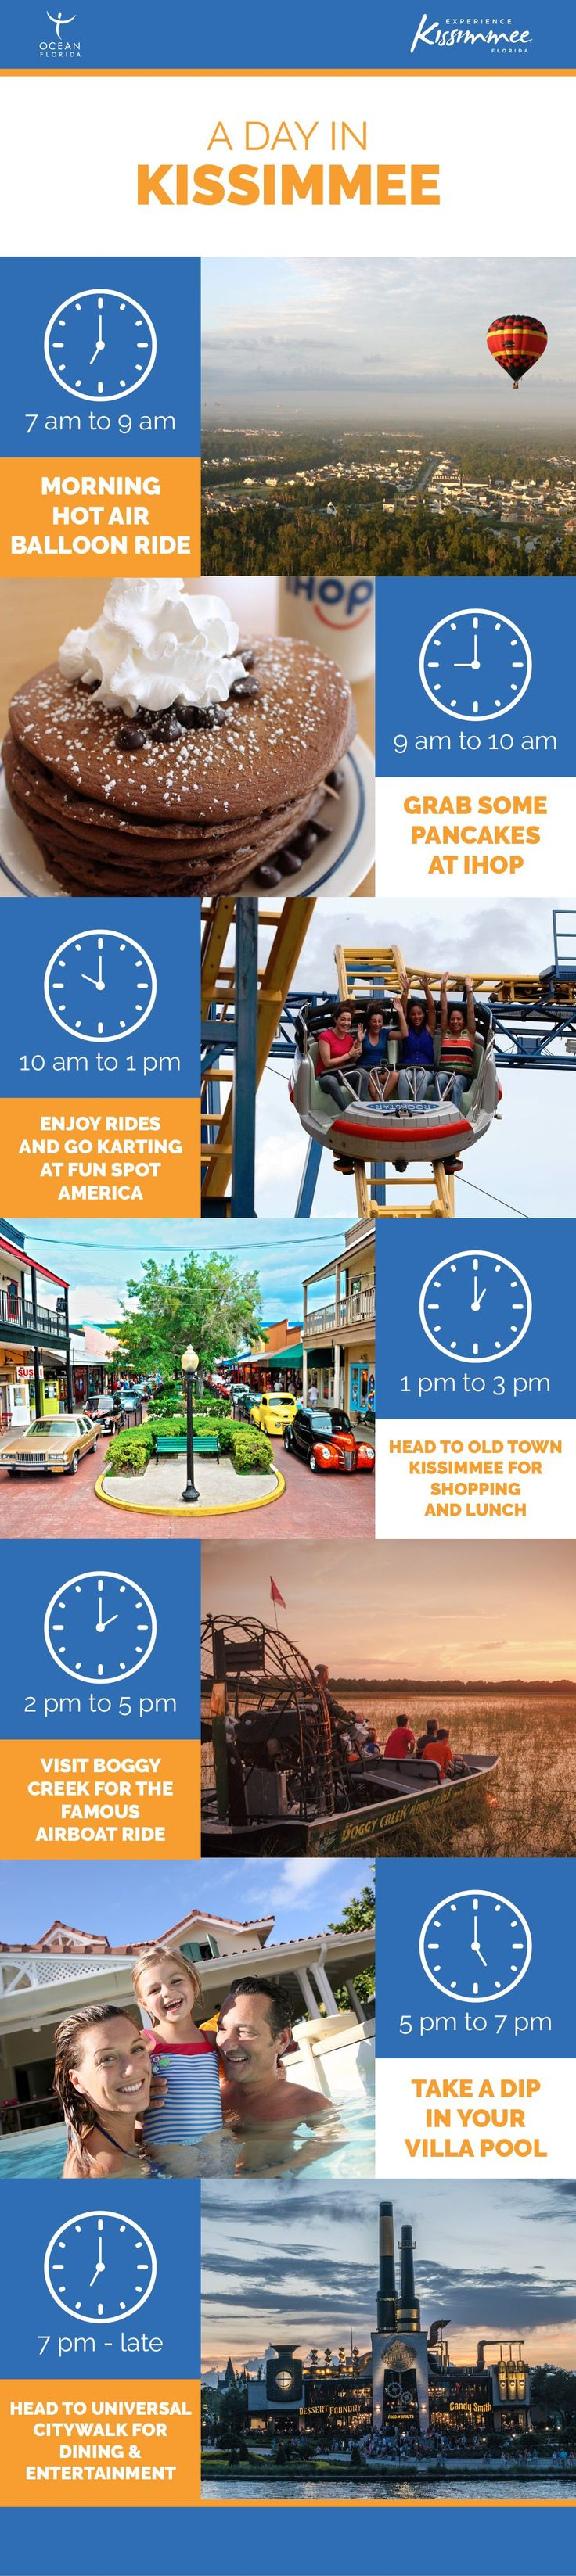 Your guide to a day in Kissimmee, Florida! ☀️#TravelTuesday : @oceanflorida